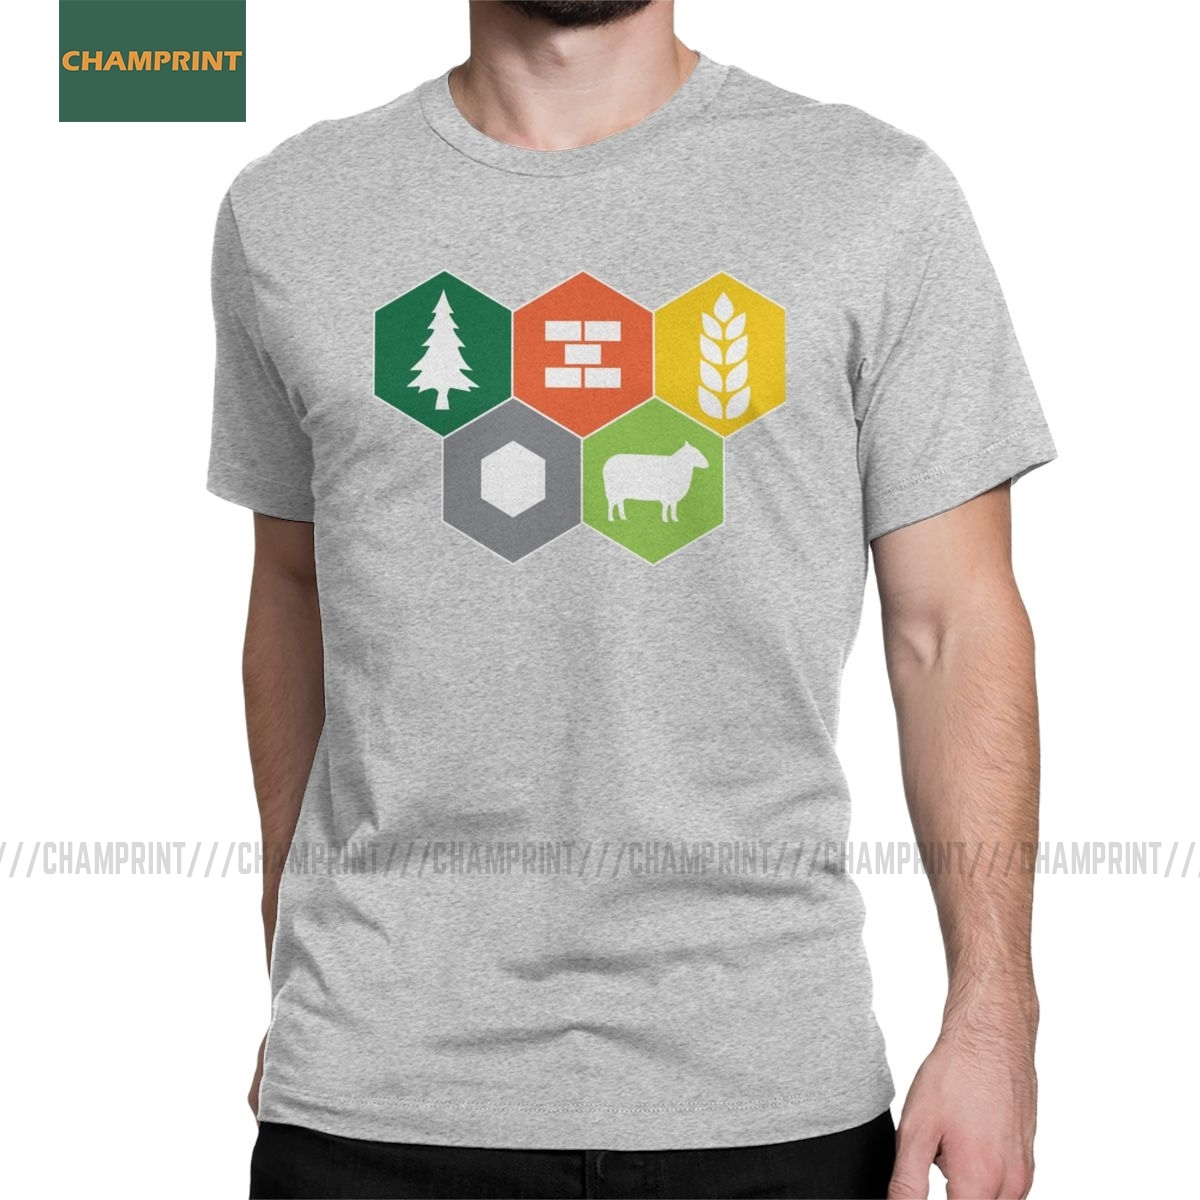 Settlers Of Catan Fan Men's T Shirts Board Wheat Sheep Wood Gamer Game Funny Tees Short Sleeve T-Shirts Pure Cotton New Arrival